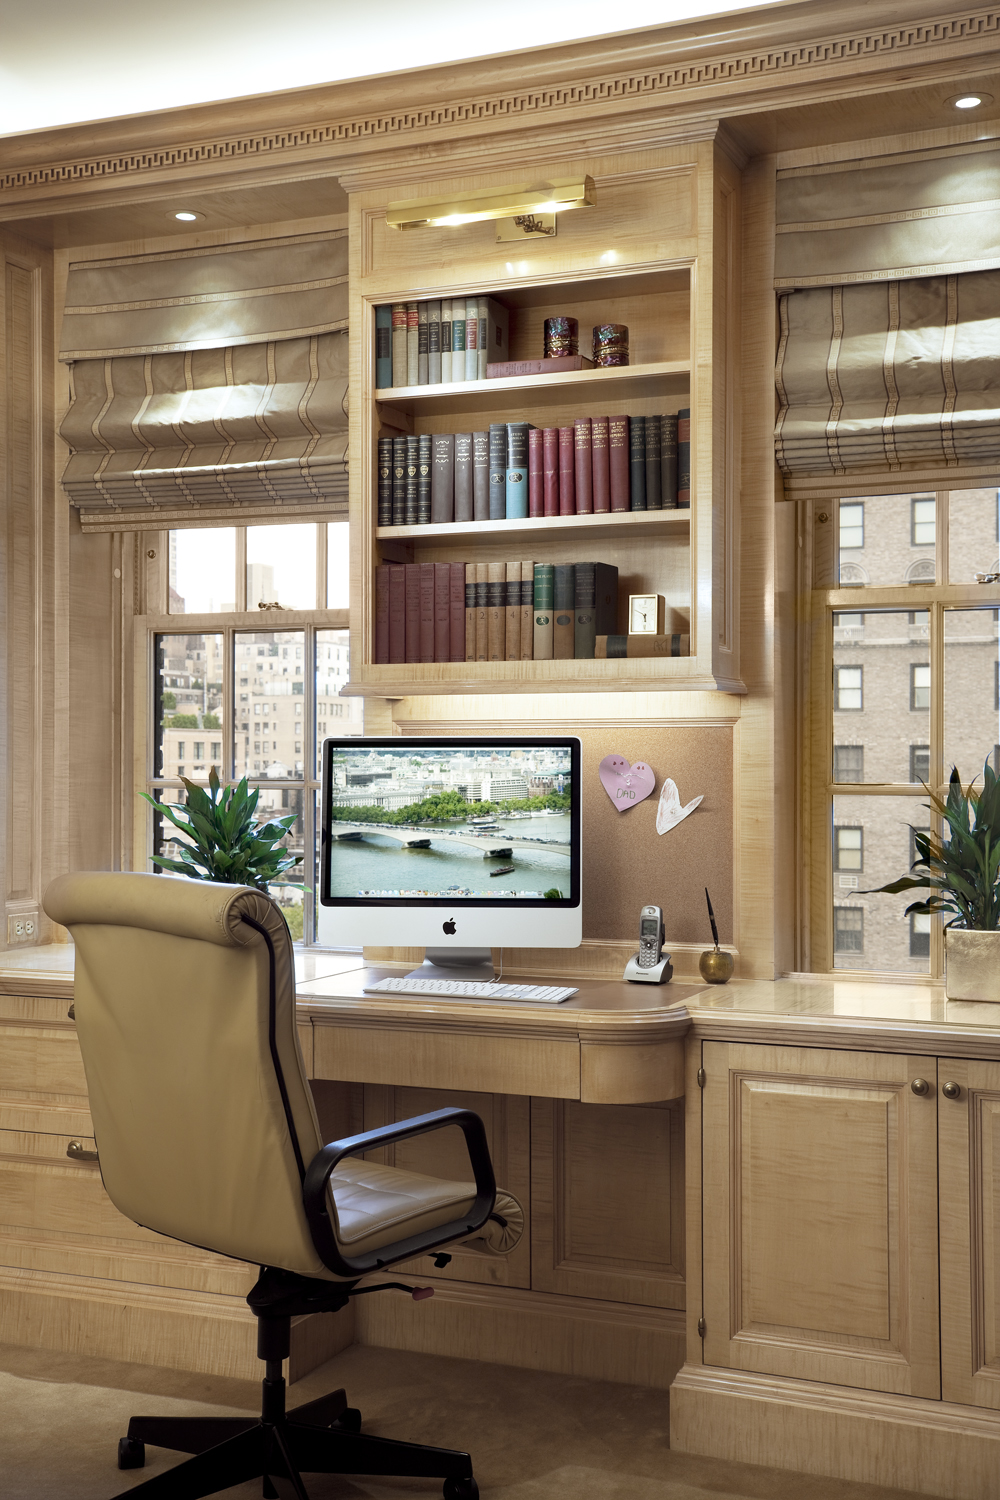 LSI-web-fifth-ave-interior-office.jpg